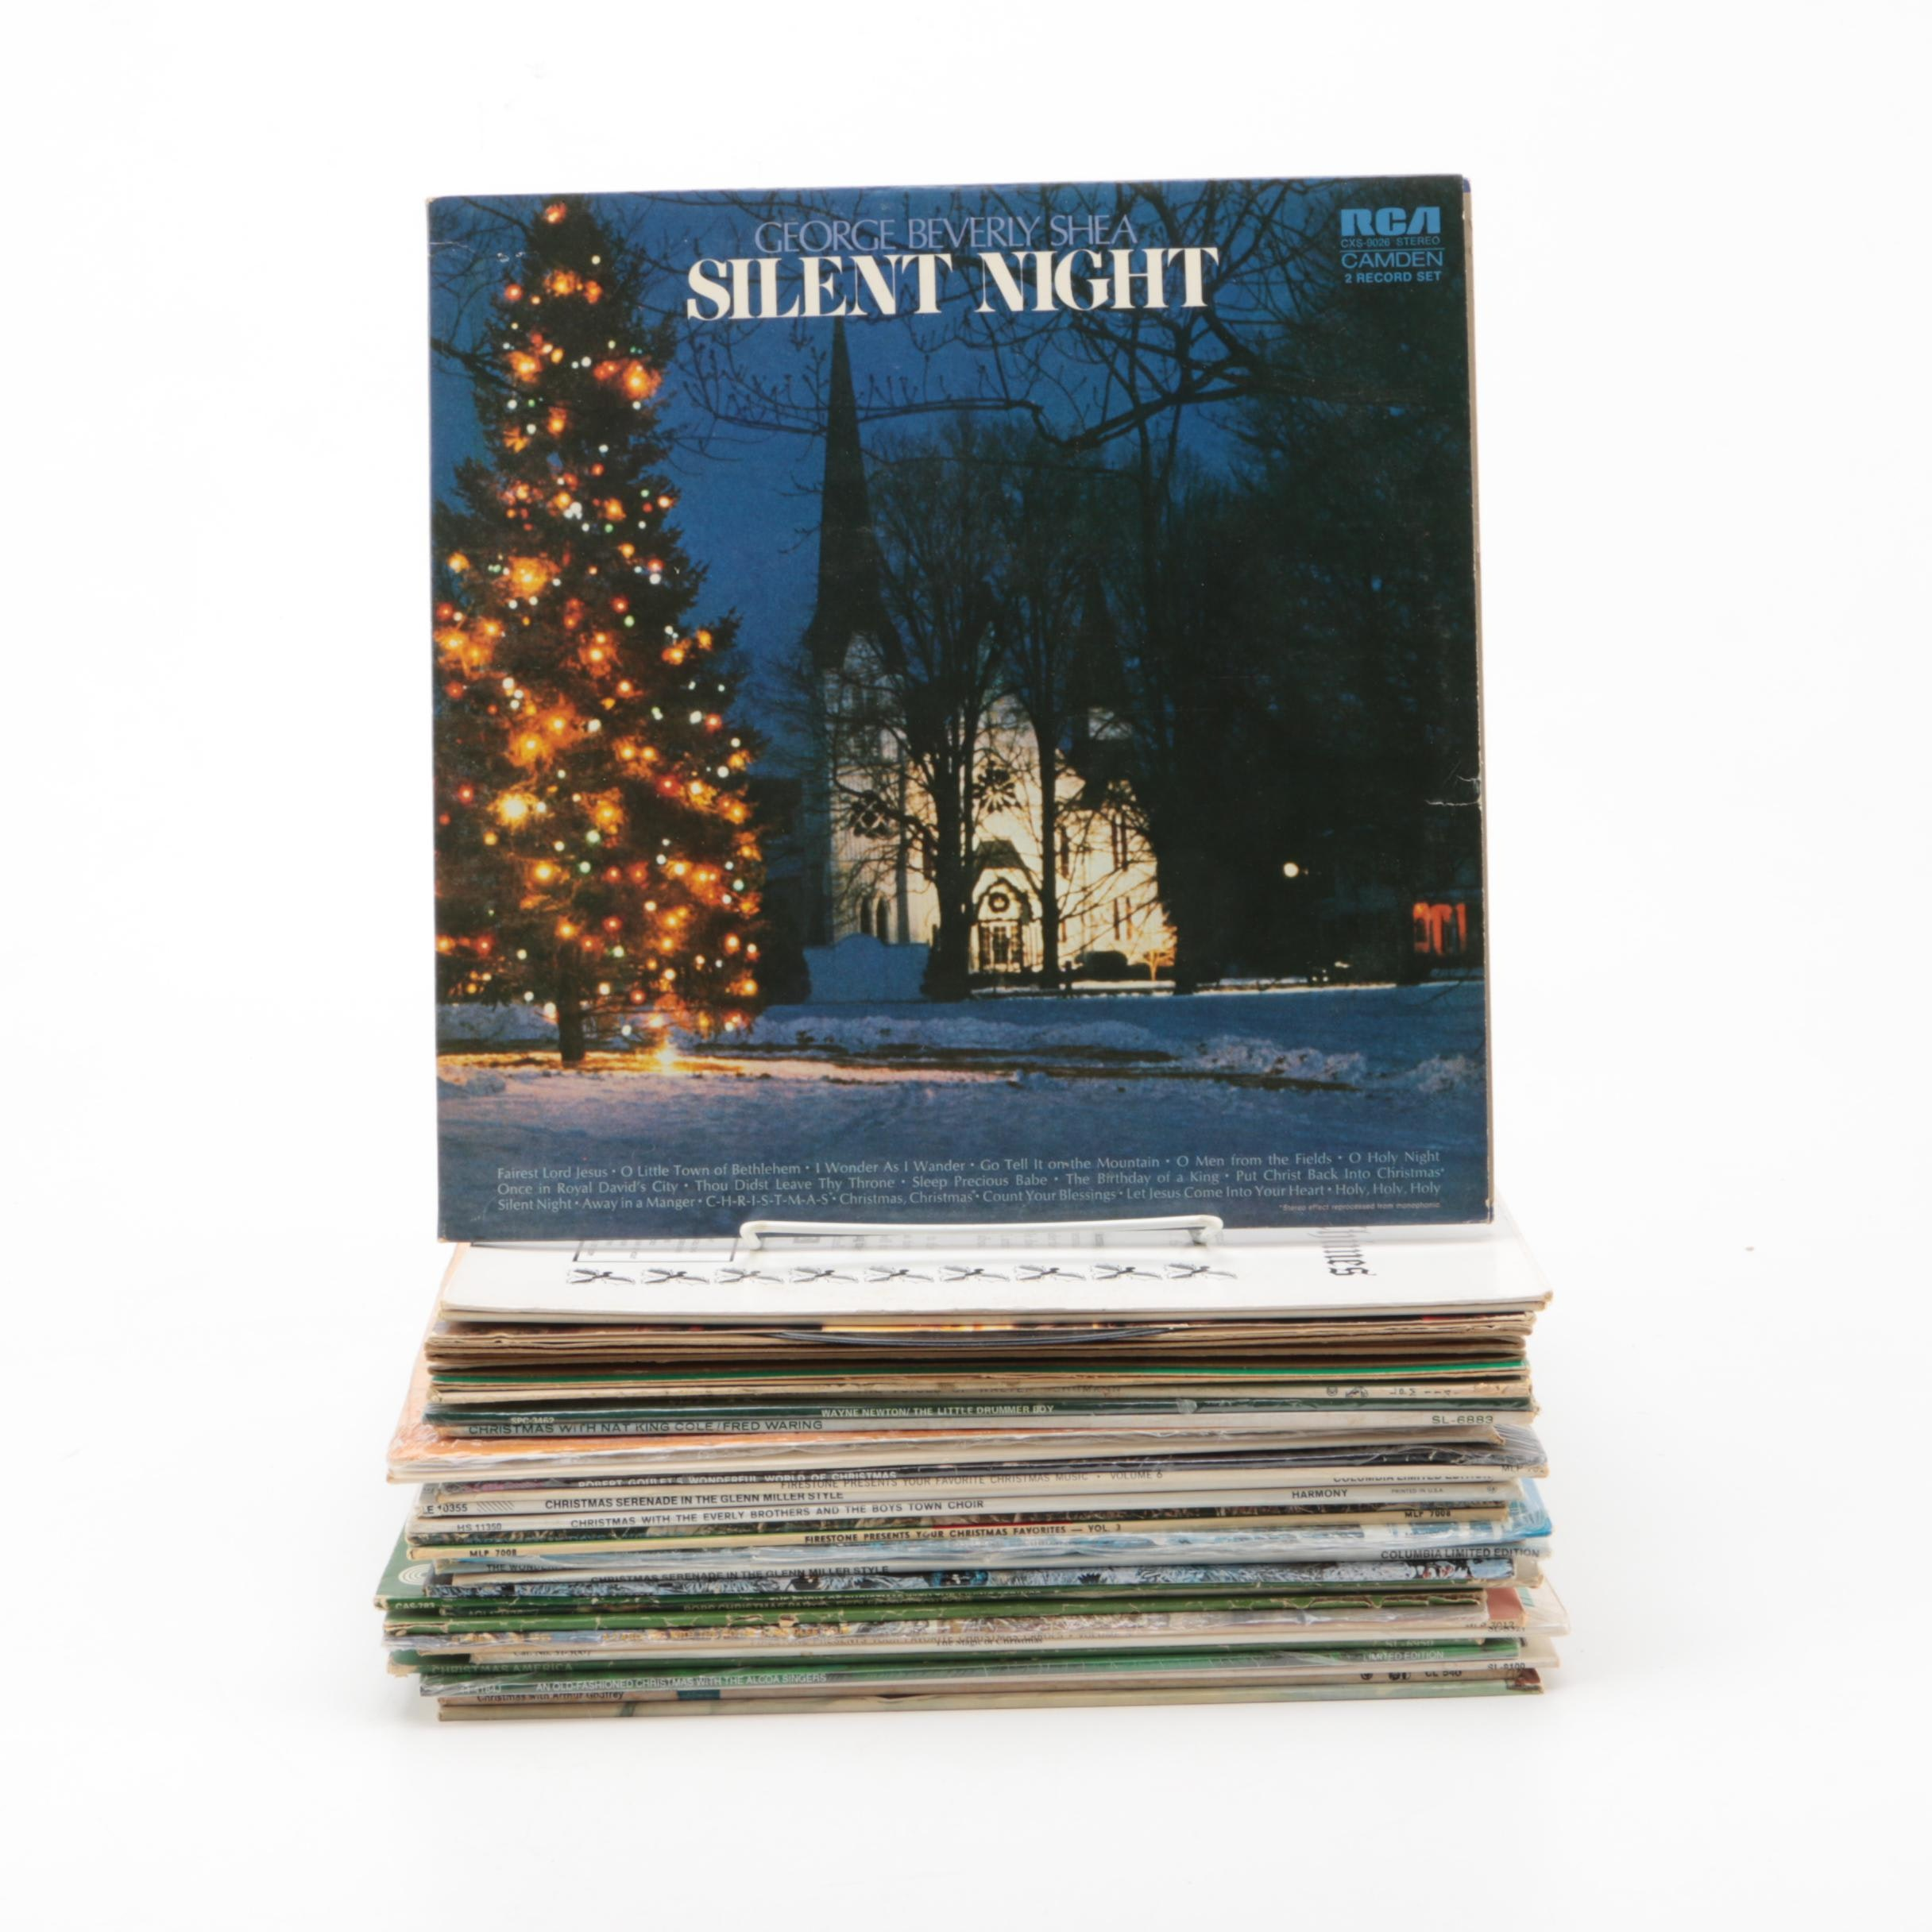 Christmas Records Featuring Johnny Mathis and Nat King Cole